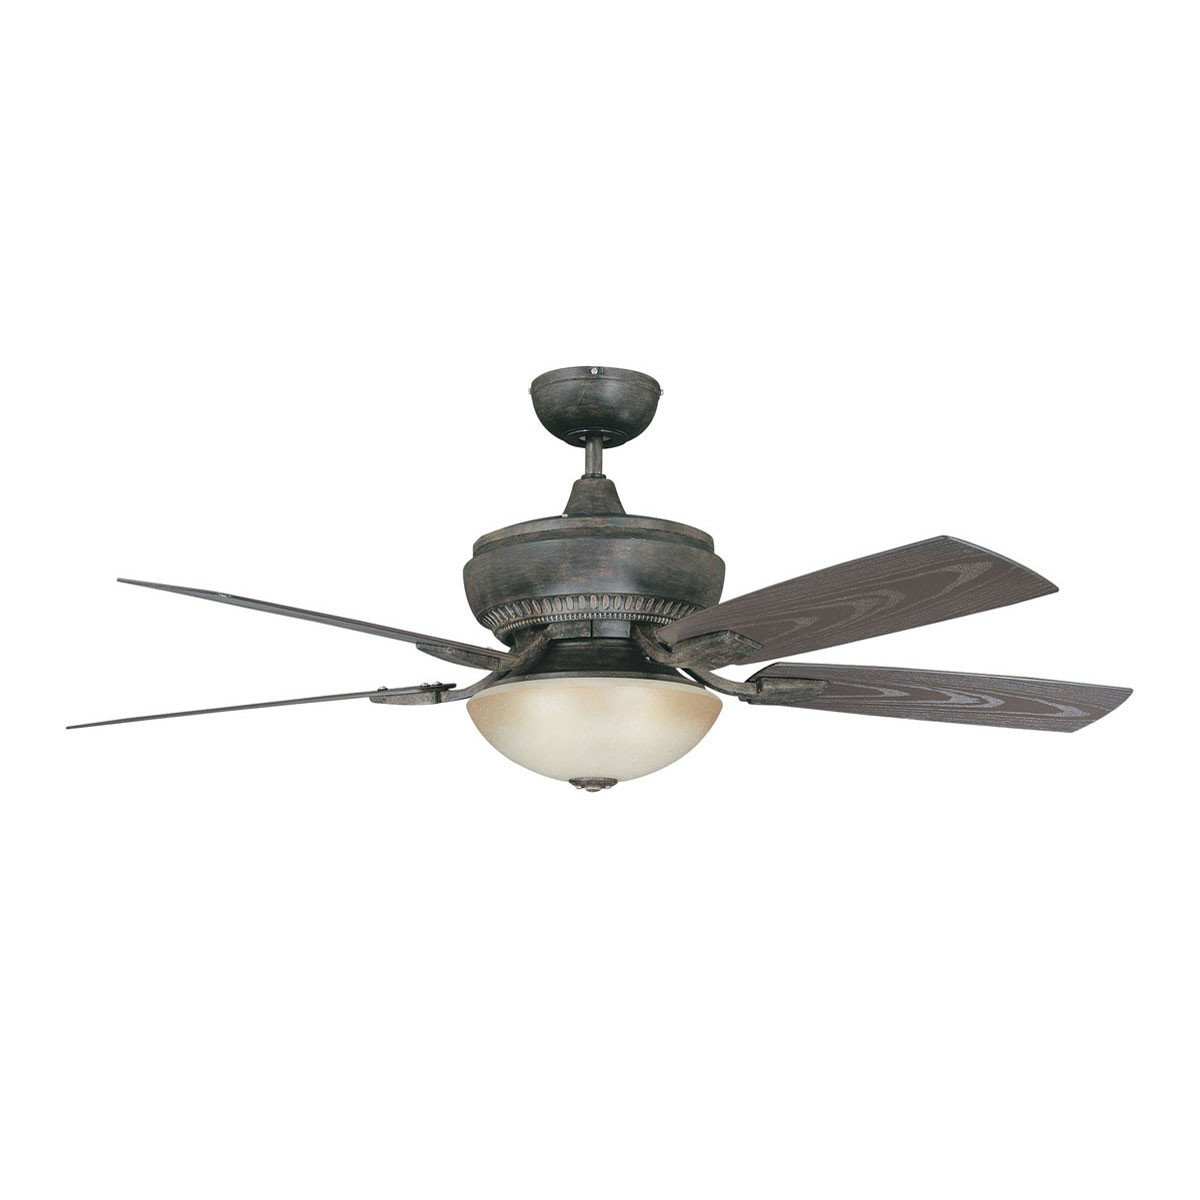 "Concord Fans 52"" Boardwalk Aged Pecan Outdoor Ceiling Fan with Light Kit"